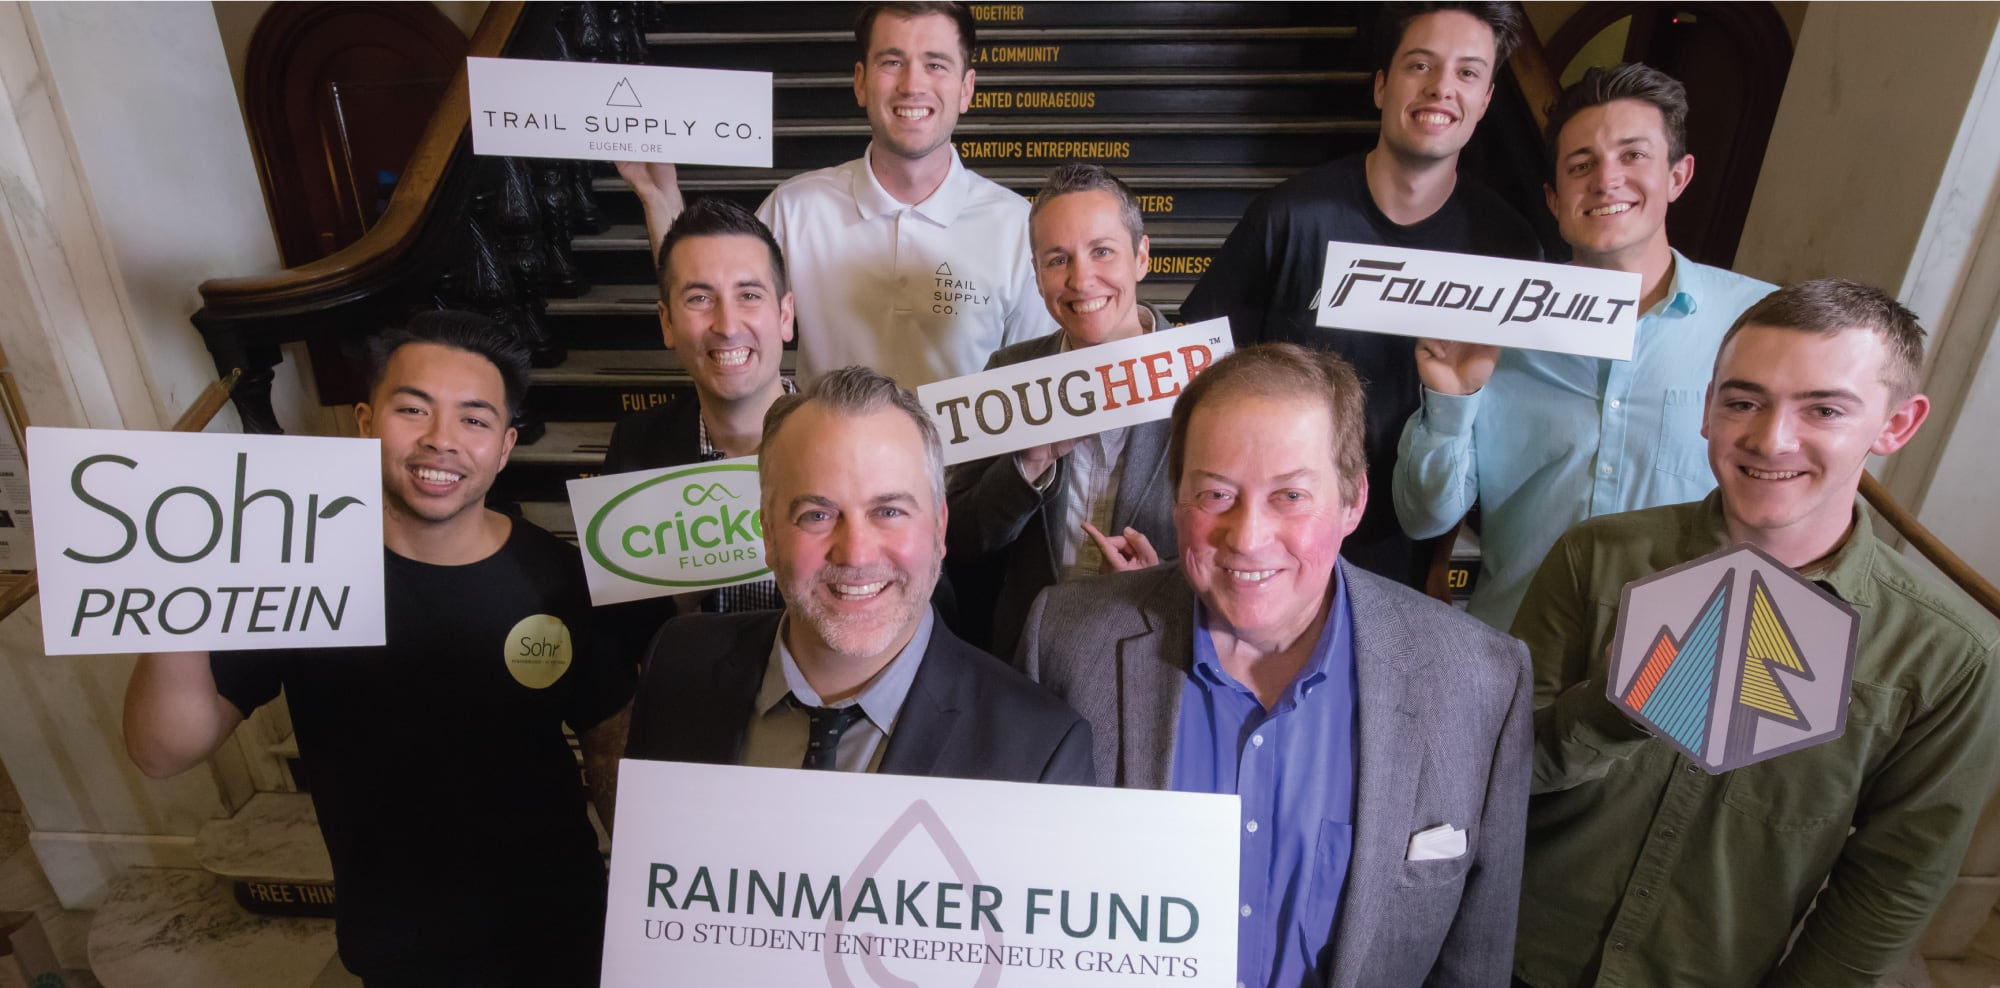 Paul Anthony Troiano poses for a photo with the student startup founders he's helped